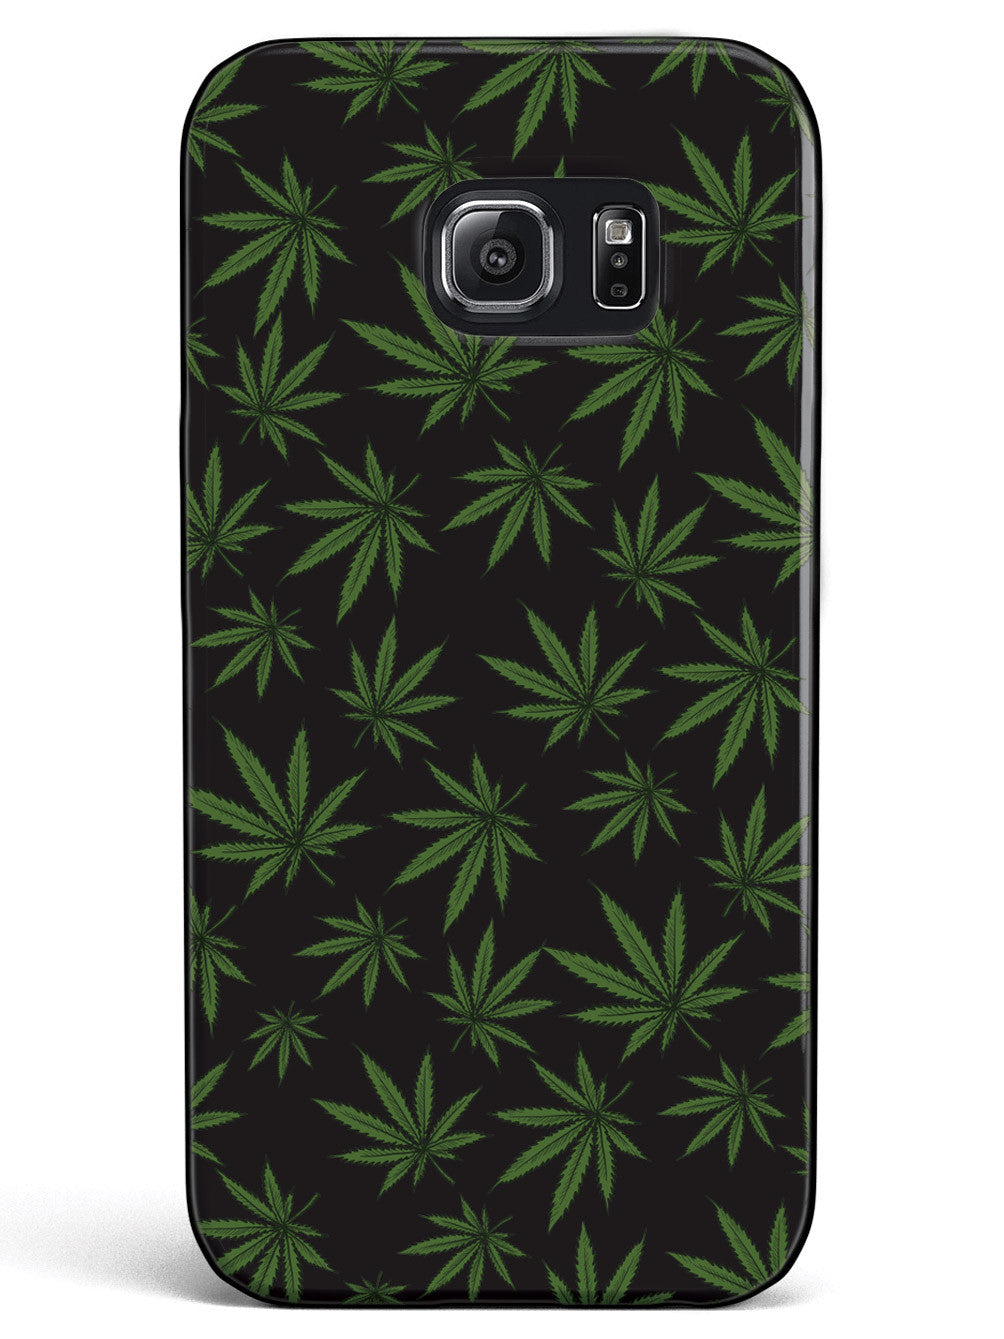 Marijuana Leaf Pattern - Black Case